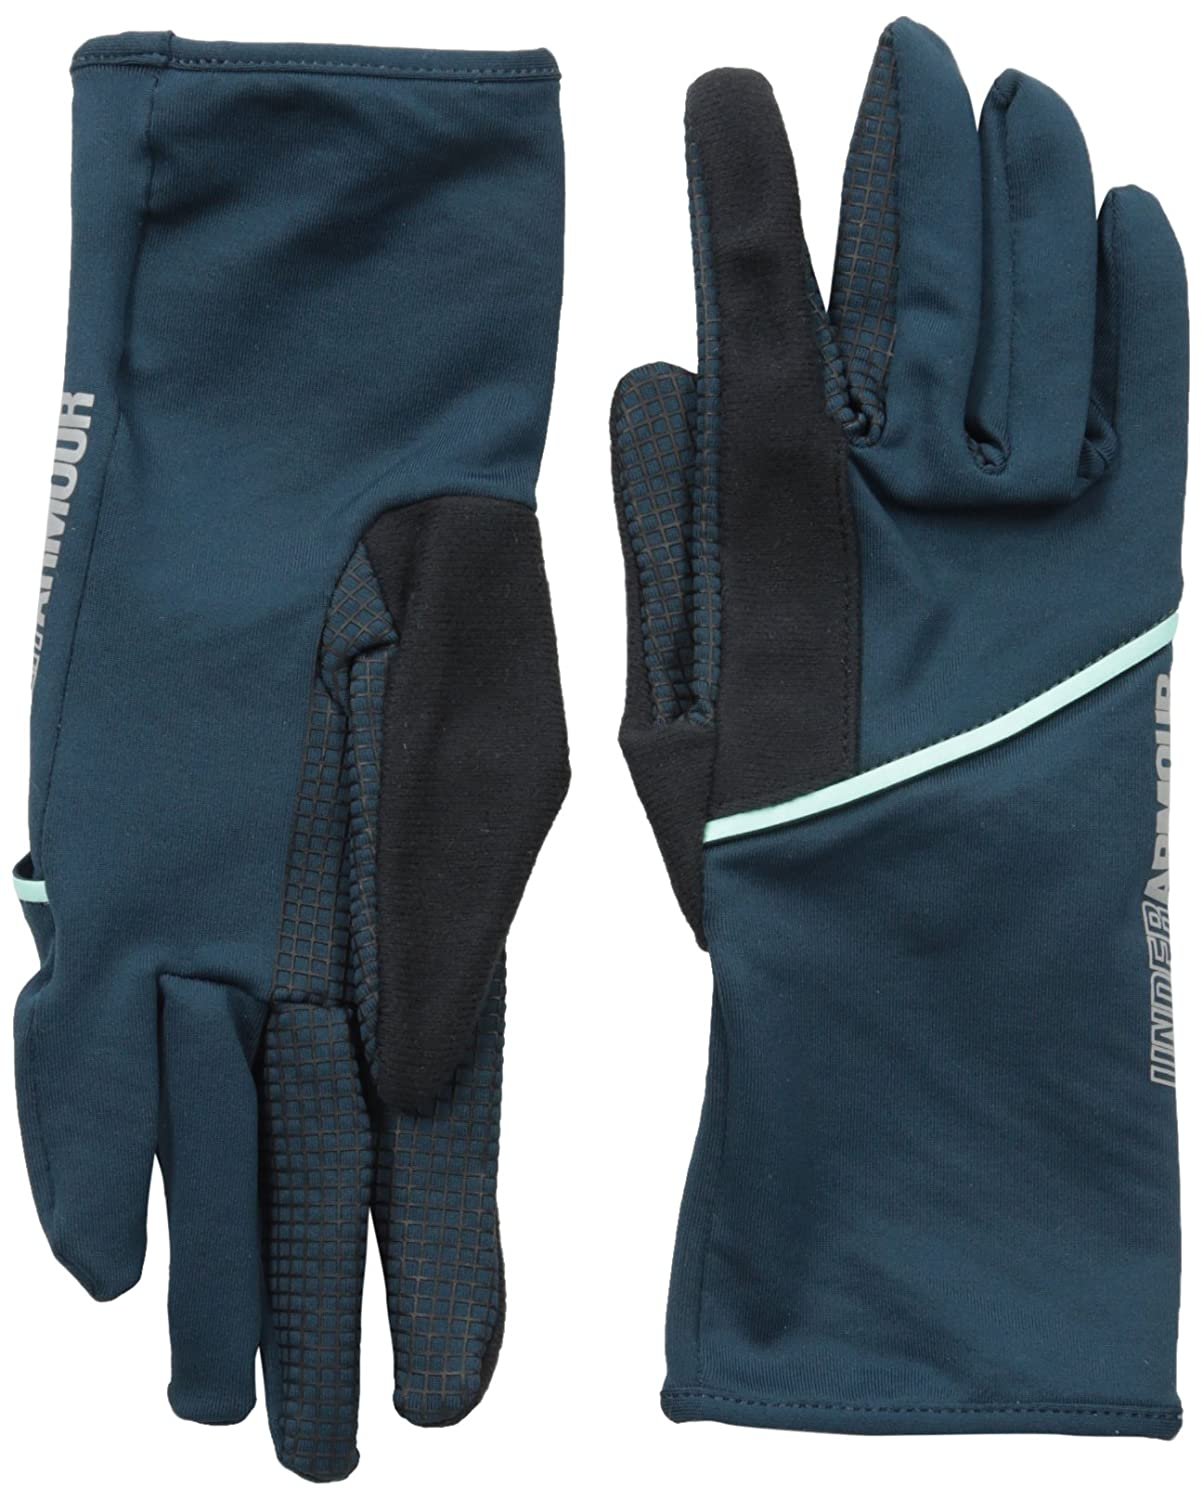 Under Armour Women's No Breaks ColdGear Infrared Liner Gloves Under Armour Accessories 1281892